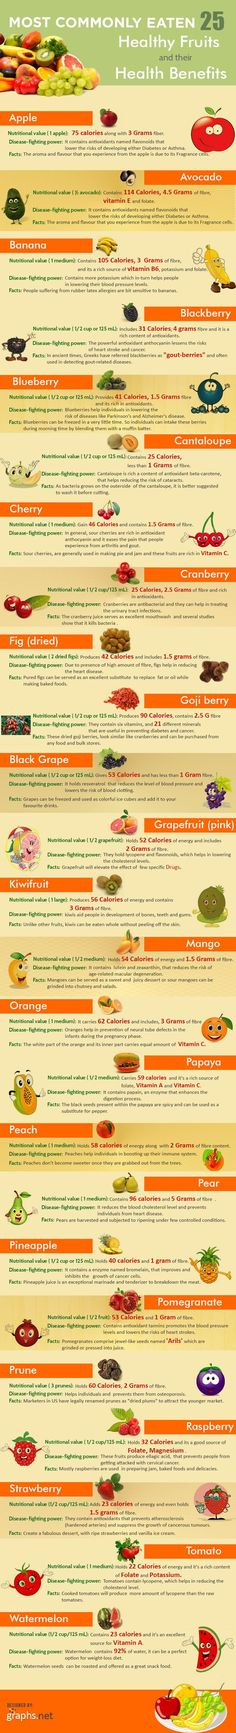 This infographic reveals some of the healthiest fruits and their powerful health benefits! You might discover something you didn't know!